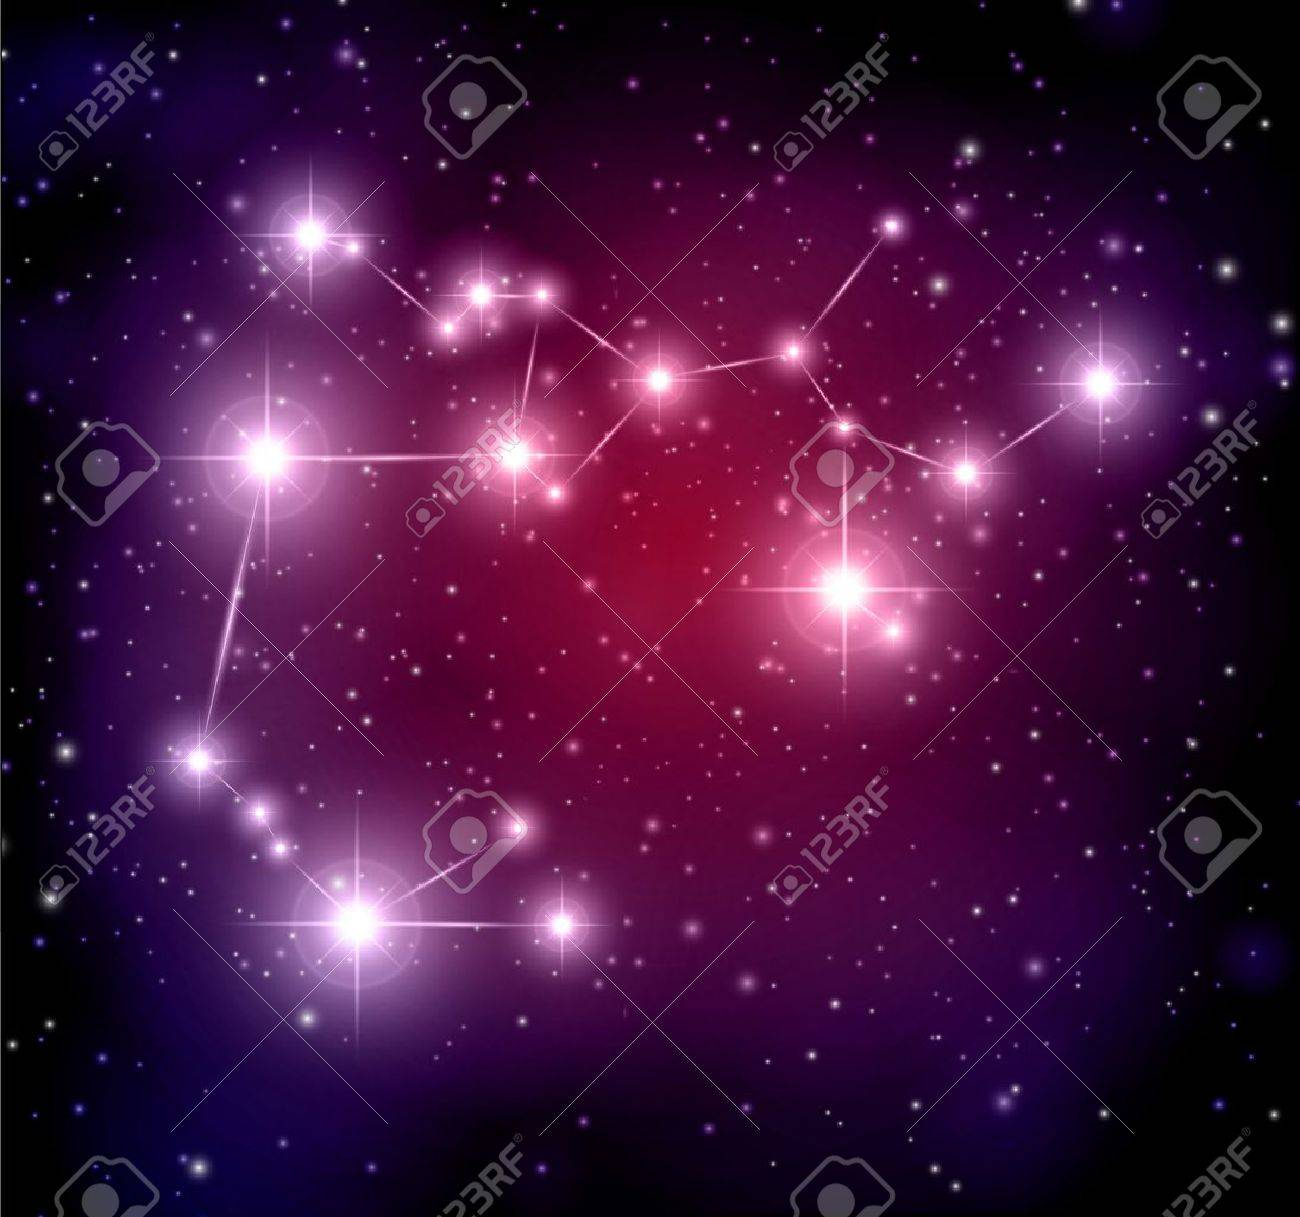 abstract space background with stars and Sagittarius constellation Stock Vector - 14305684